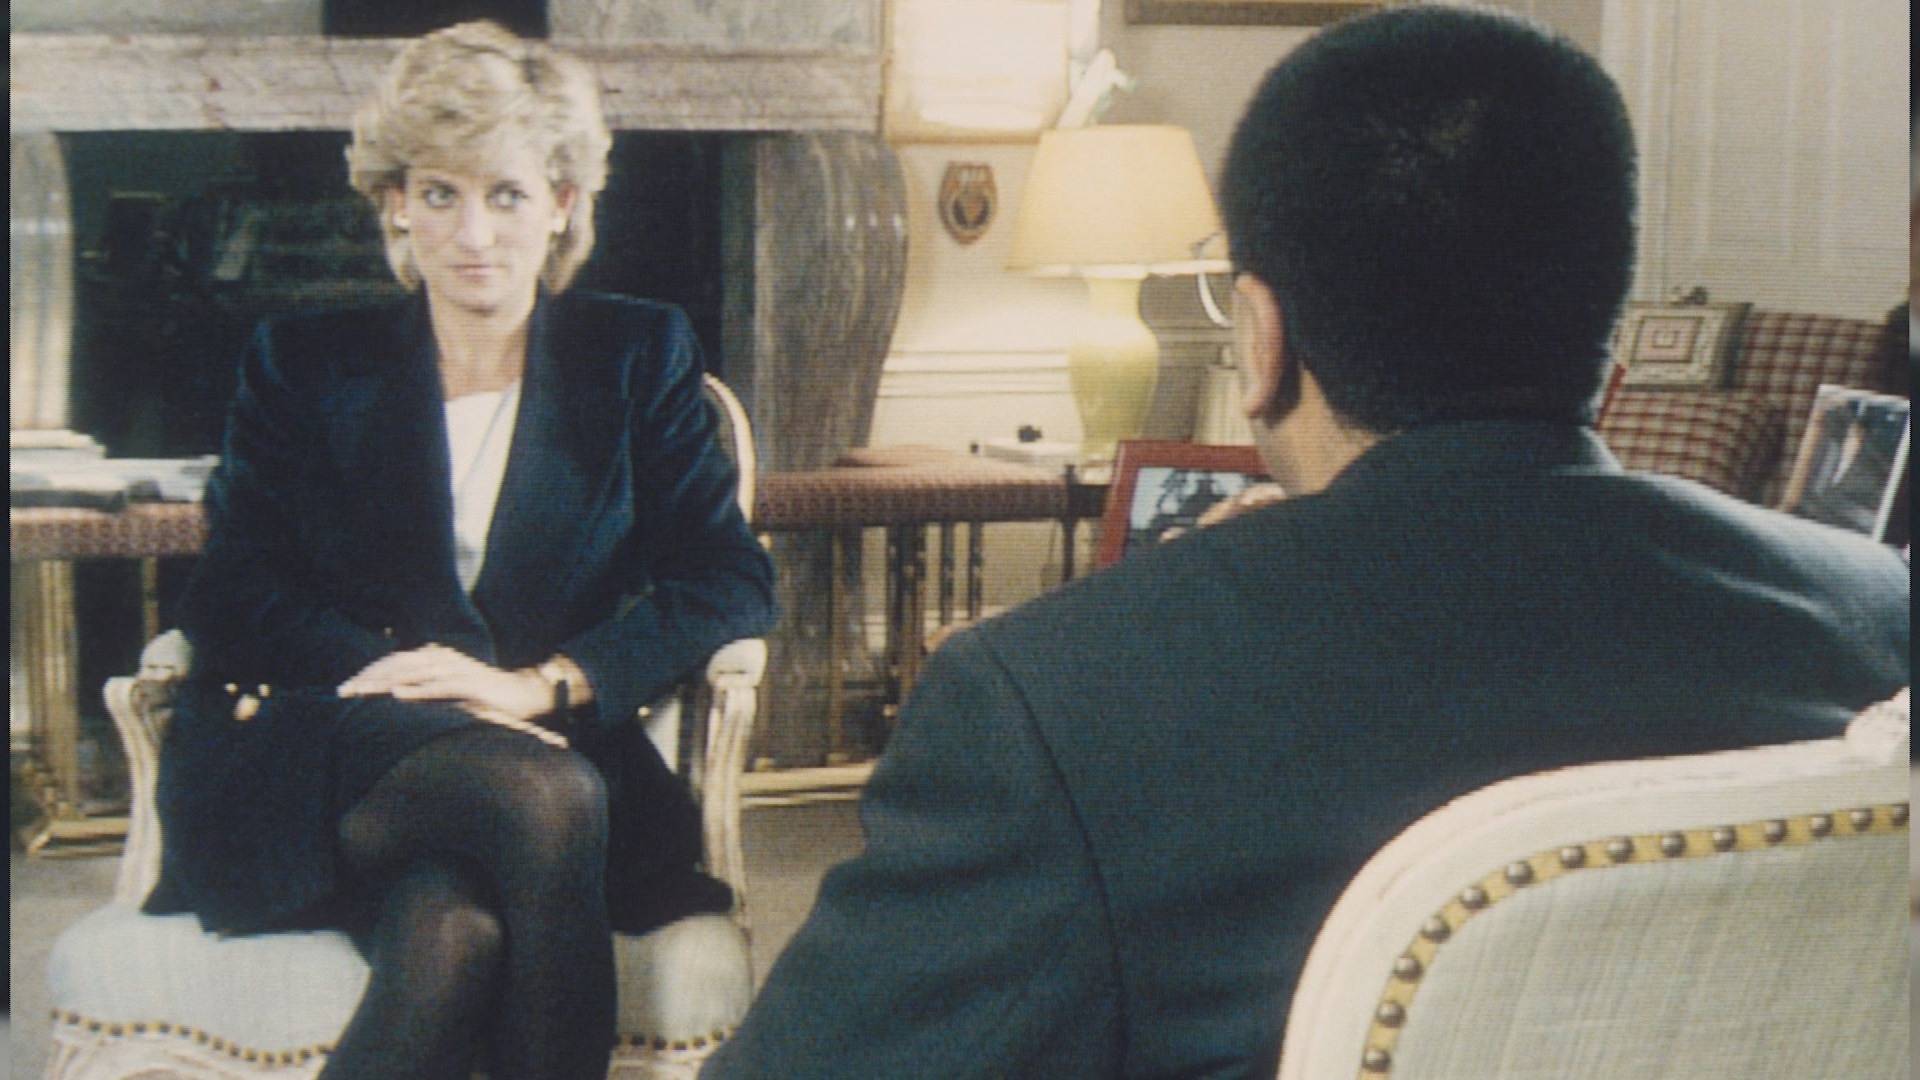 BBC journalist quits as investigation into his landmark Princess Diana interview wraps up